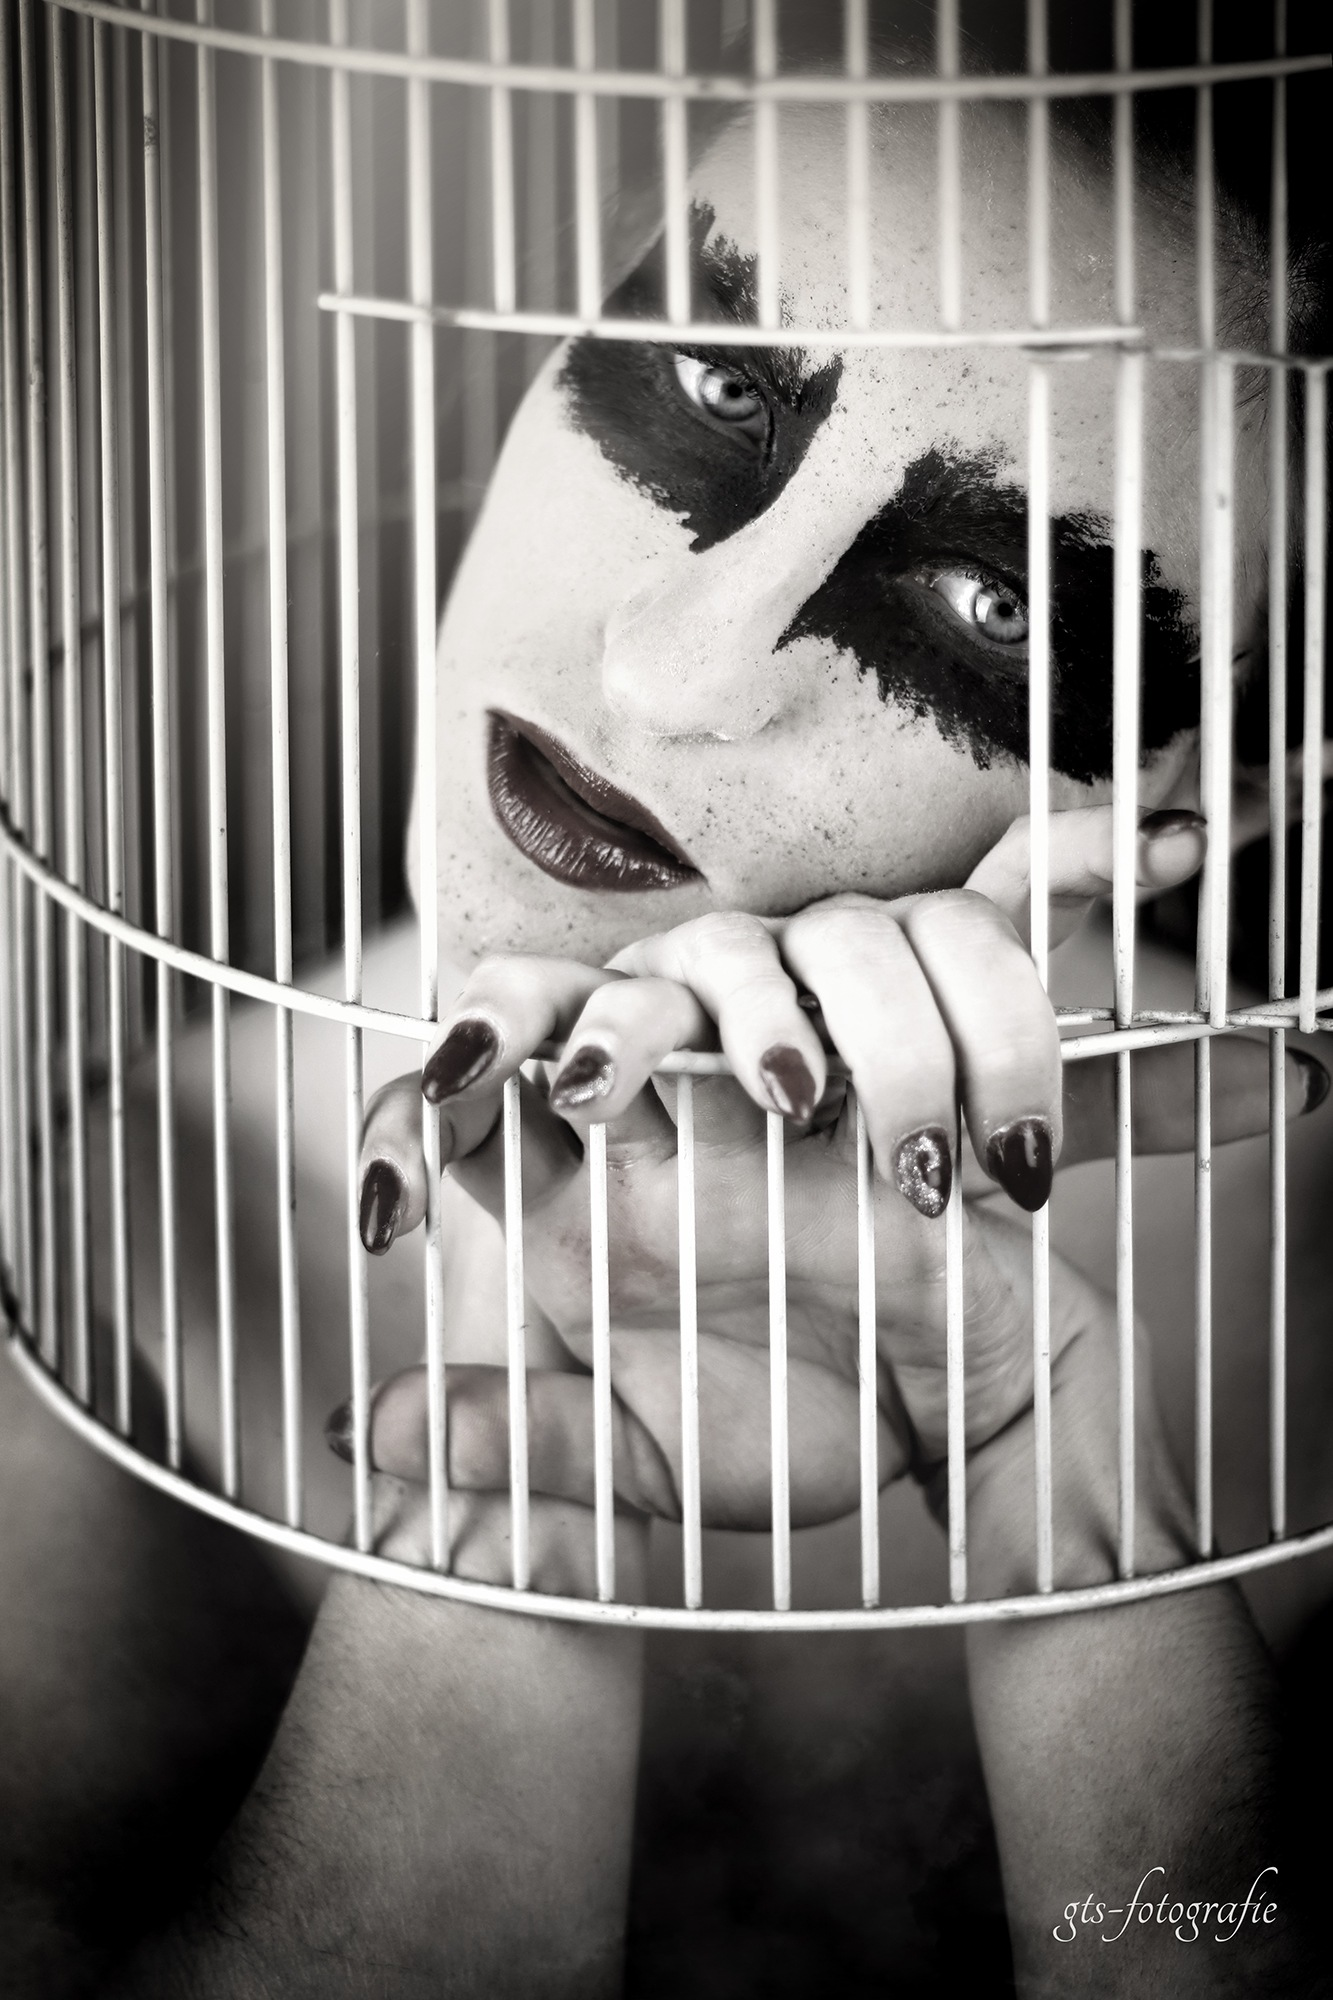 own cage by schiwa.rose